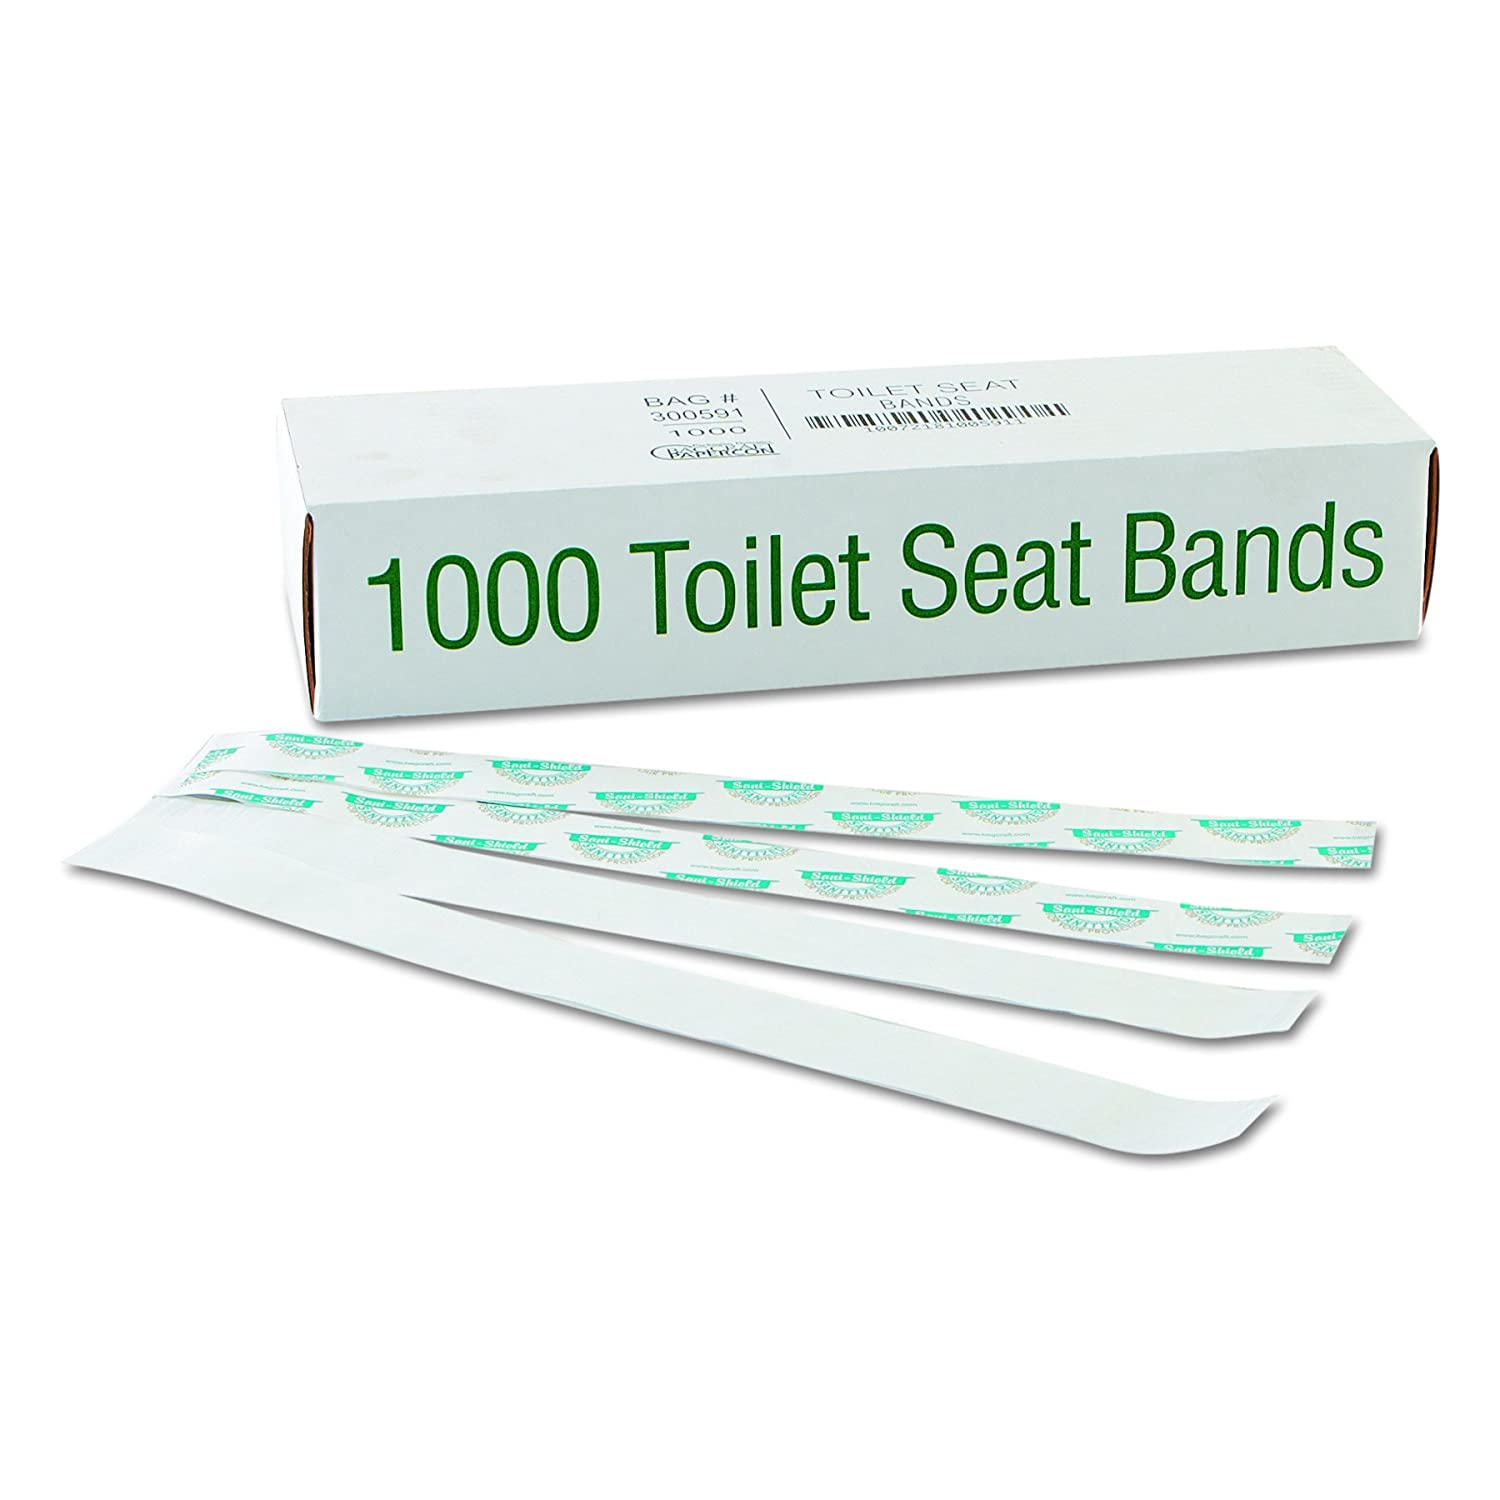 Bagcraft 300591 Sani/Shield Printed Toilet Seat Band, Paper, Blue/White, 16' Wide x 1-1/2' Deep (Case of 1000) 16 Wide x 1-1/2 Deep (Case of 1000) Packaging Dynamics BGC300591